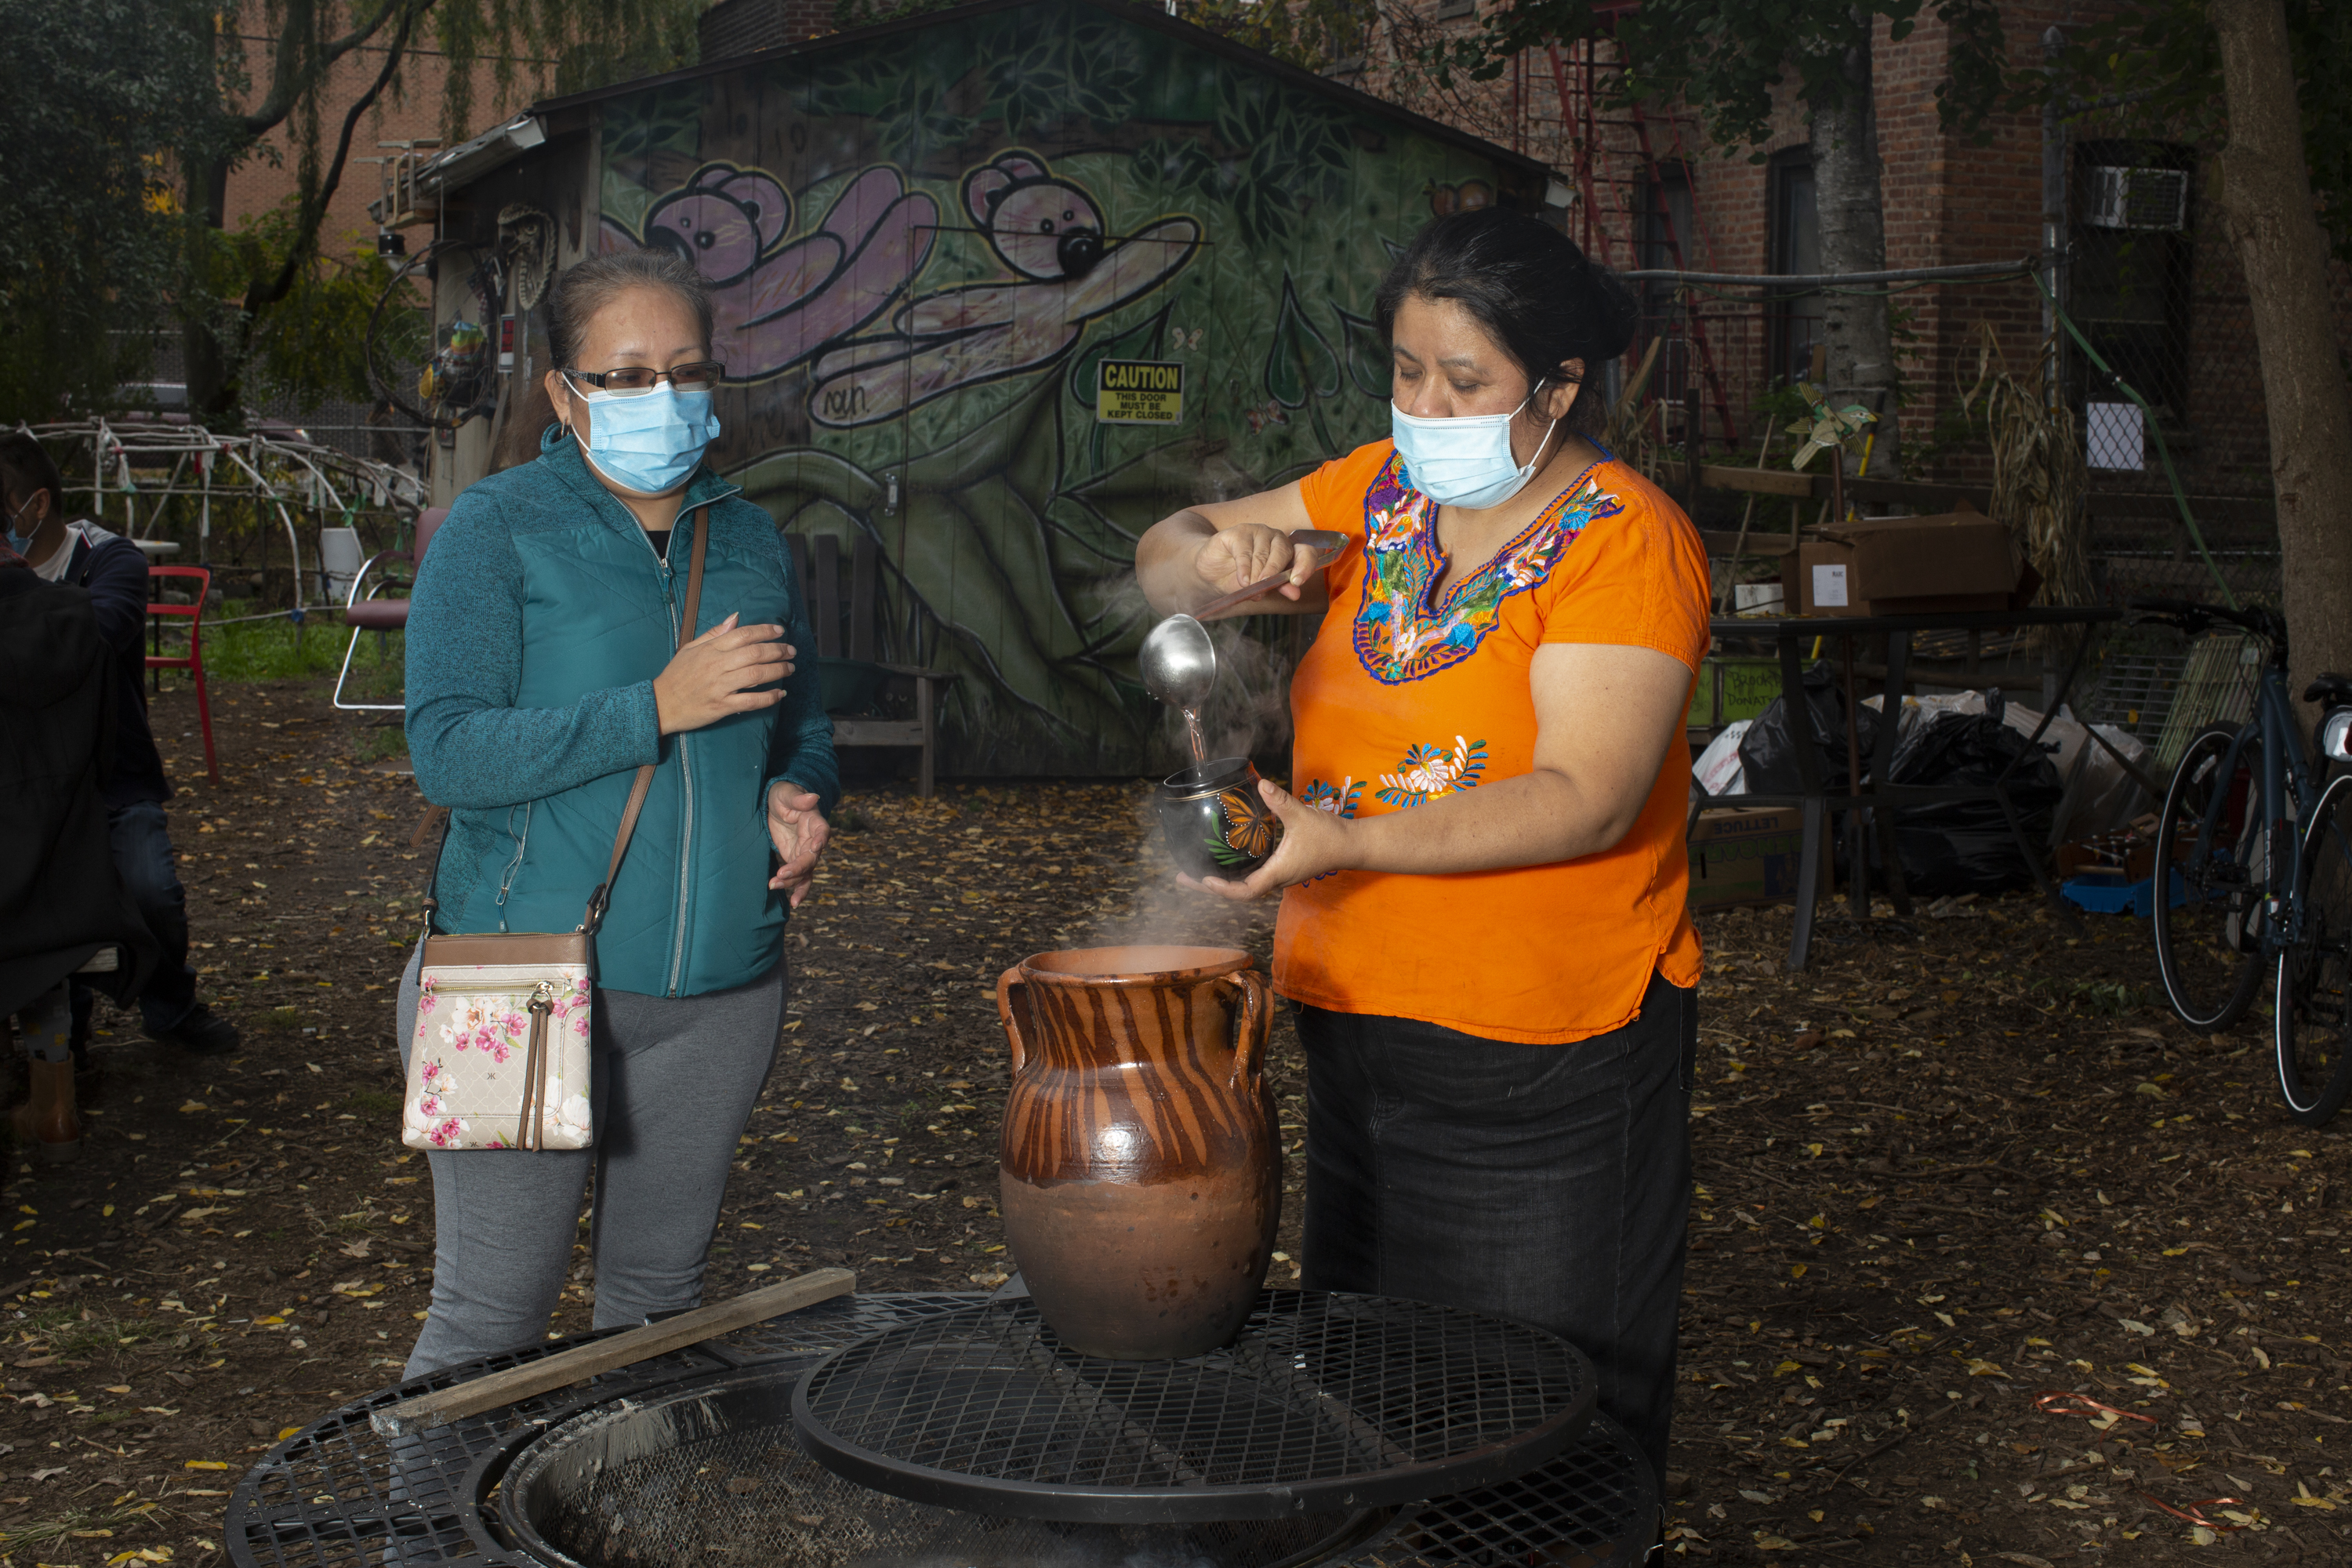 Natalia, wearing an Indigenous Mexican embroidered shirt (orange with flowers), a long black skirt, stands near a fire, serving tea to a workshop participant who is wearing a green jacket and grey pants. Both wear medical masks. Photo by Cinthya Santos-Briones for Brewing Memories workshop, October 24, 2020.